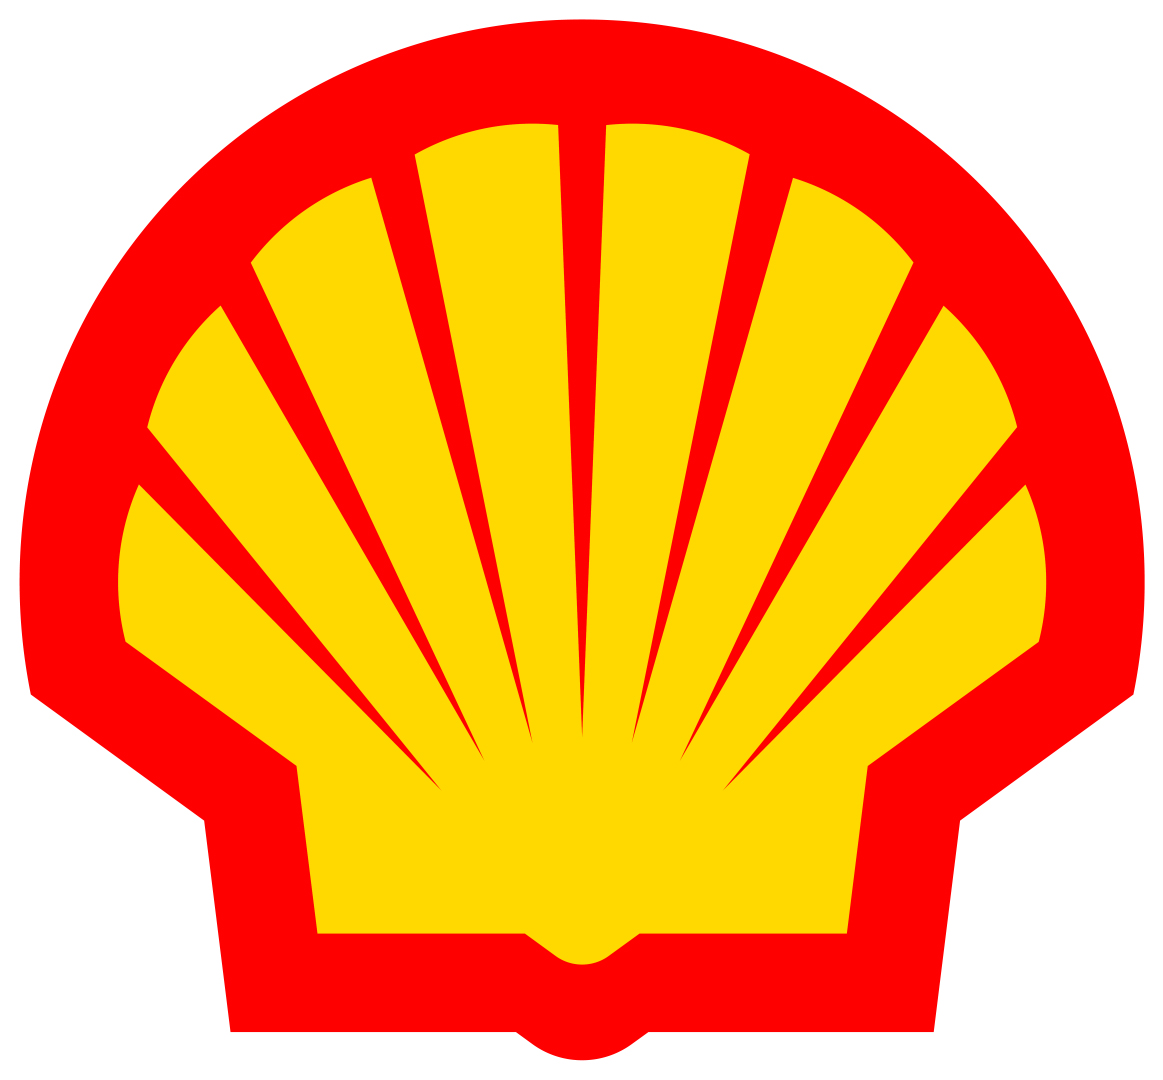 Shell Symbol Brand Wallpaper